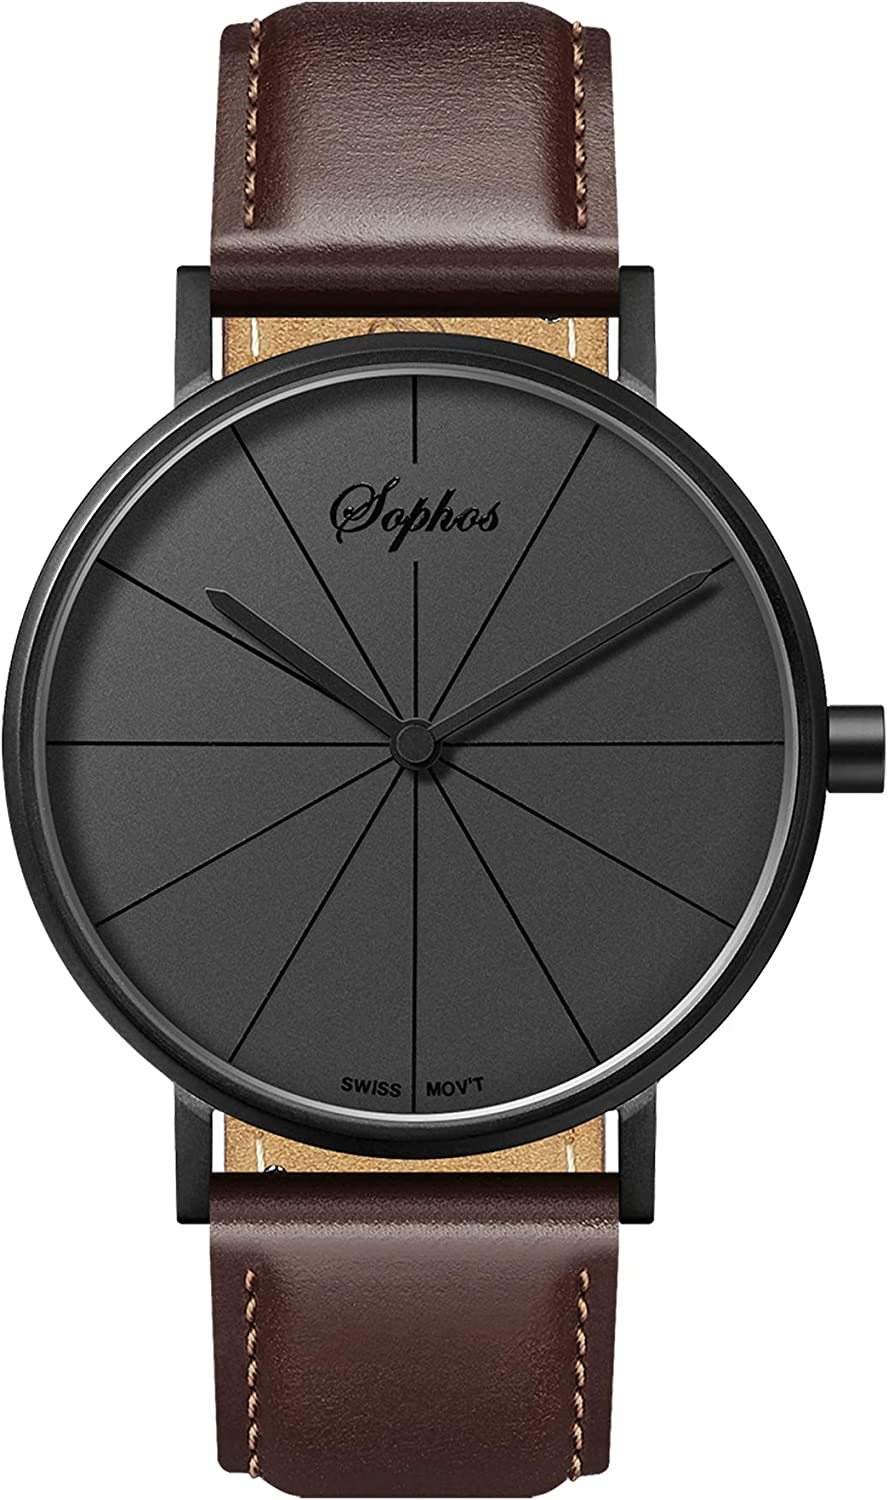 Sophos Collection Watches 41mm, Men s Minimalist Waterproof Watch Analogue Quartz Adults Watch with Genuine Leather Watch Strap